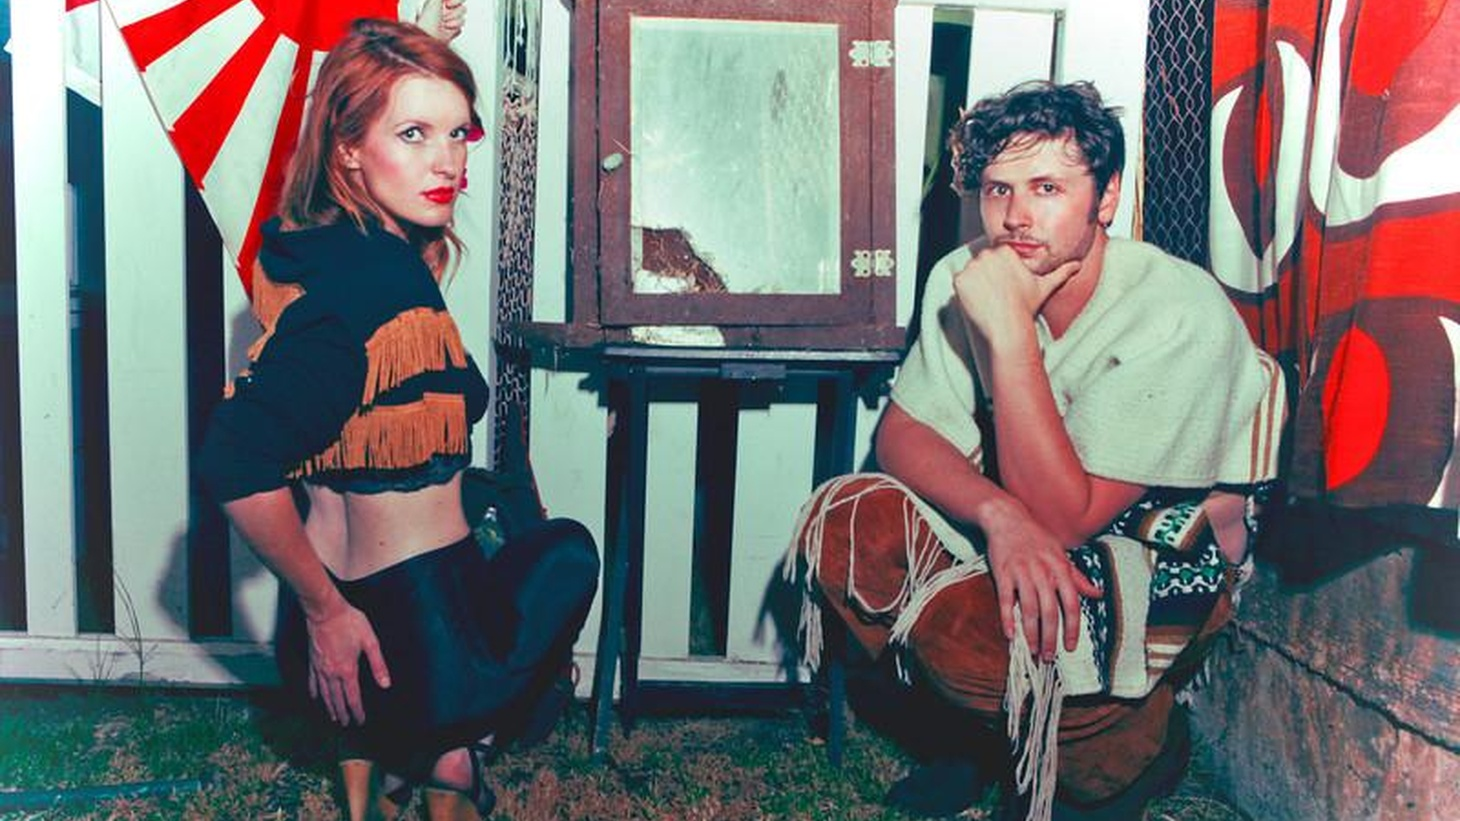 LA duo The Peach Kings have caught our attention with their new EP, Handsome Moves...